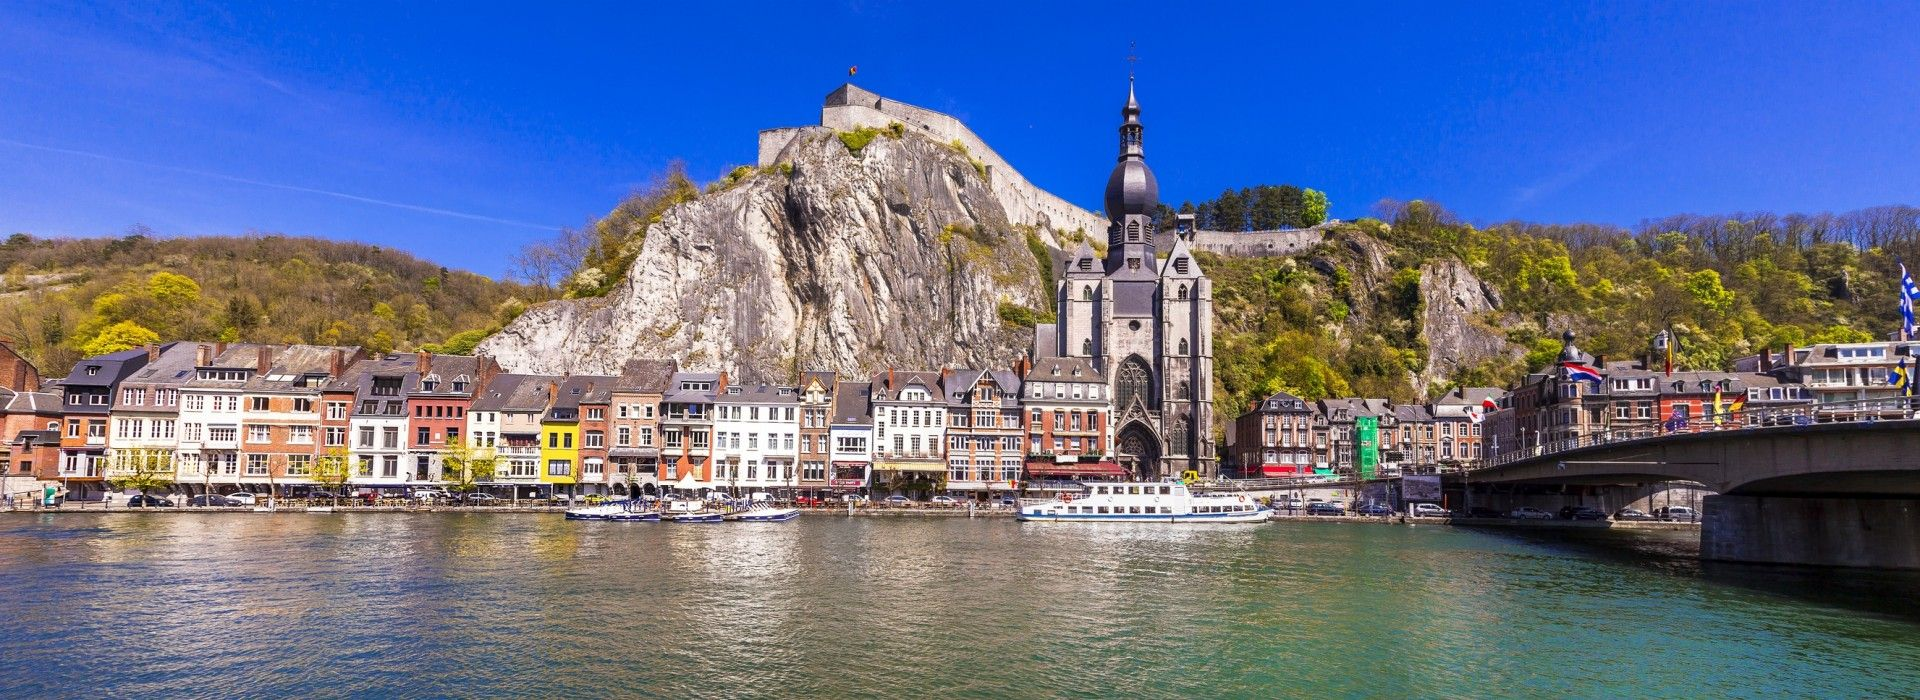 Boat tours, water sports and marine wildlife in Brussels